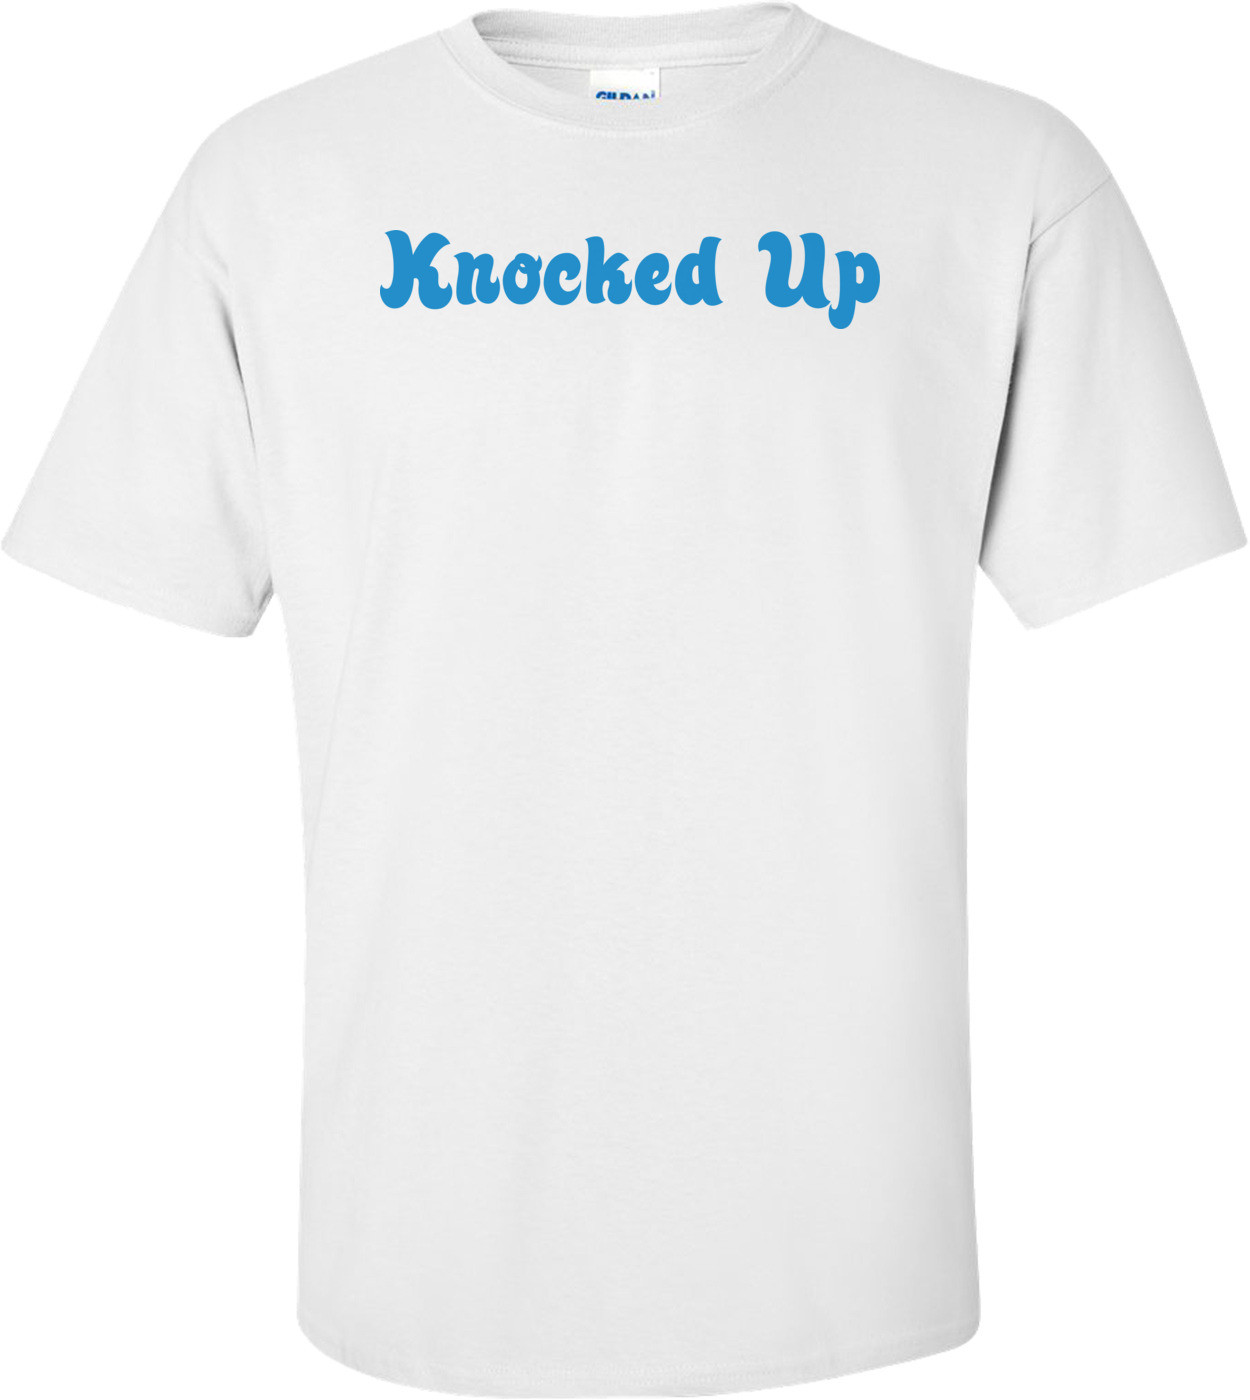 Knocked Up Funny Maternity Shirt